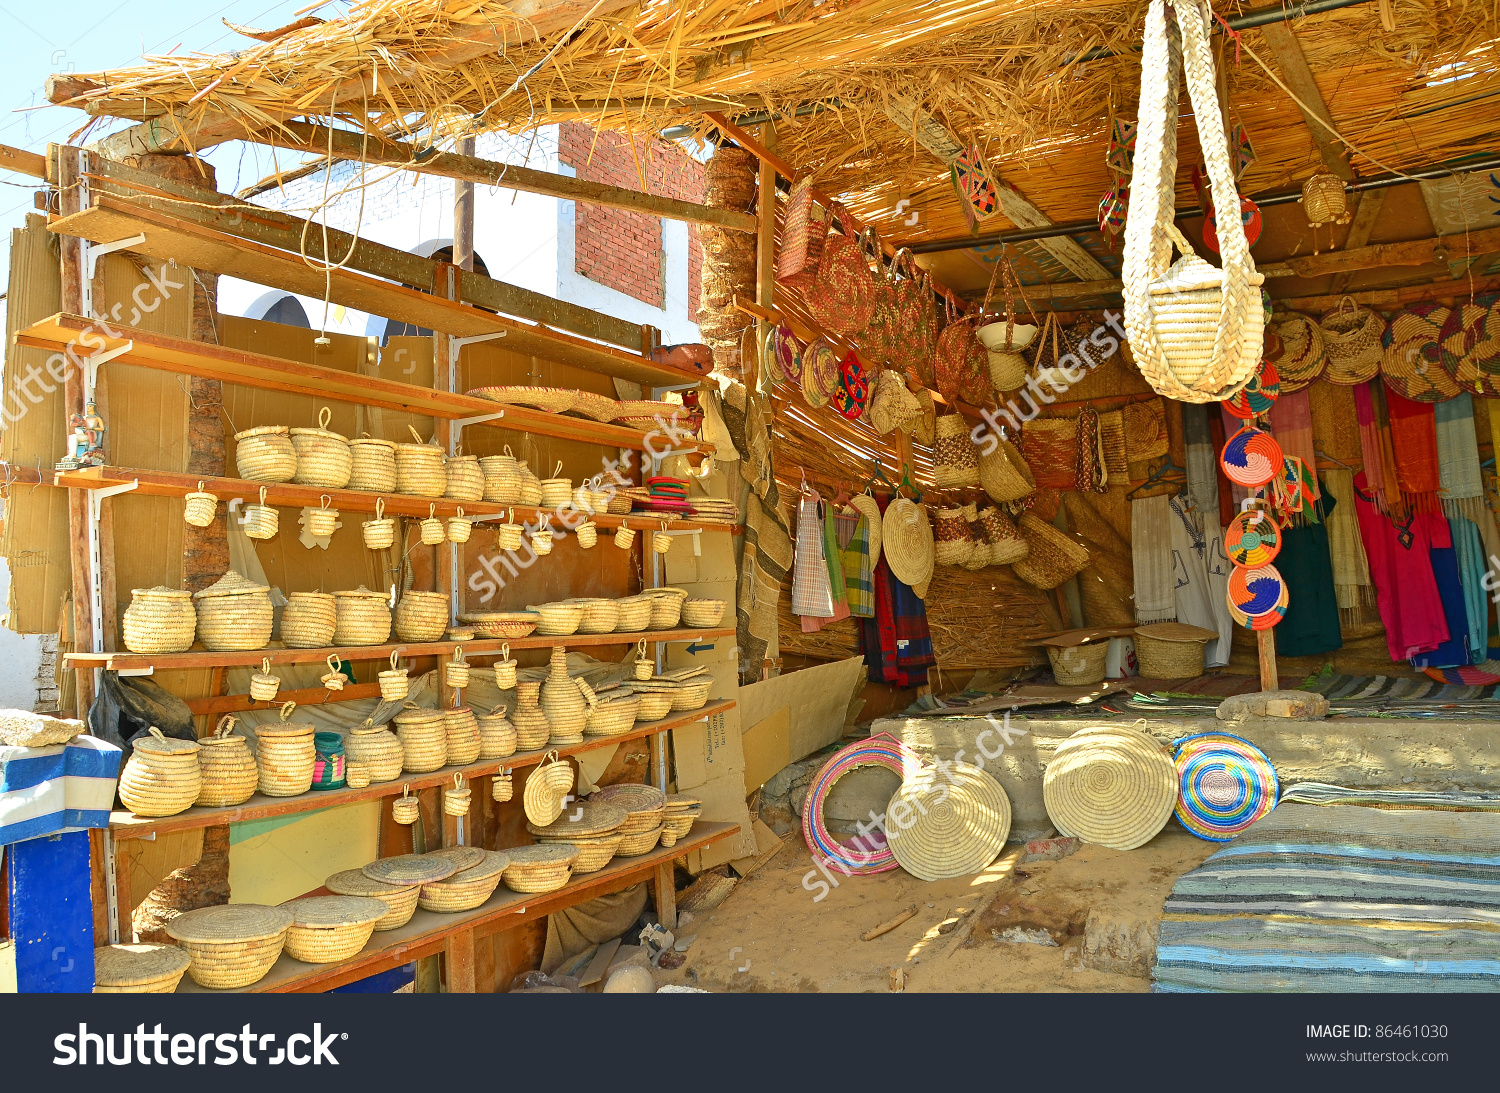 Souvenir Stand Nubian Village Egypt Aswan Stock Photo 86461030.